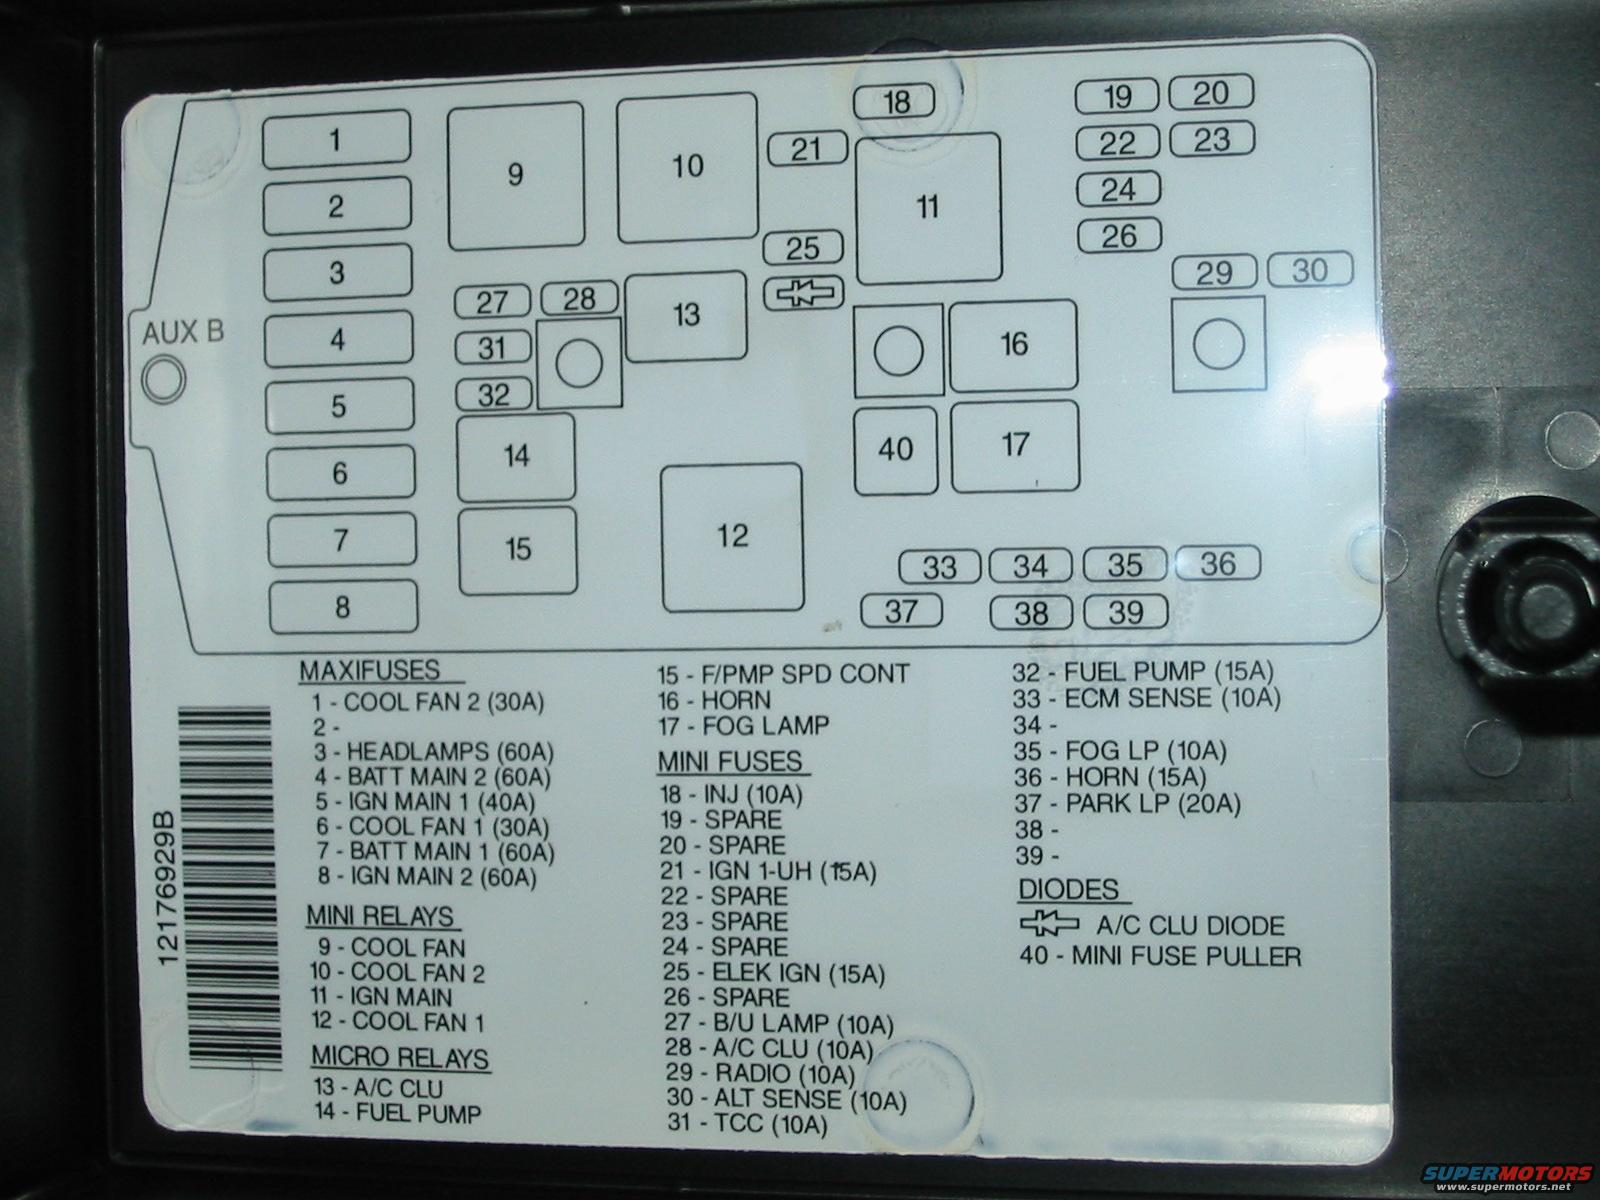 2007 Peterbilt Fuse Box Diagram Opinions About Wiring 387 And Relay Will Be A Thing U2022 Rh Exploreandmore Co Uk Location